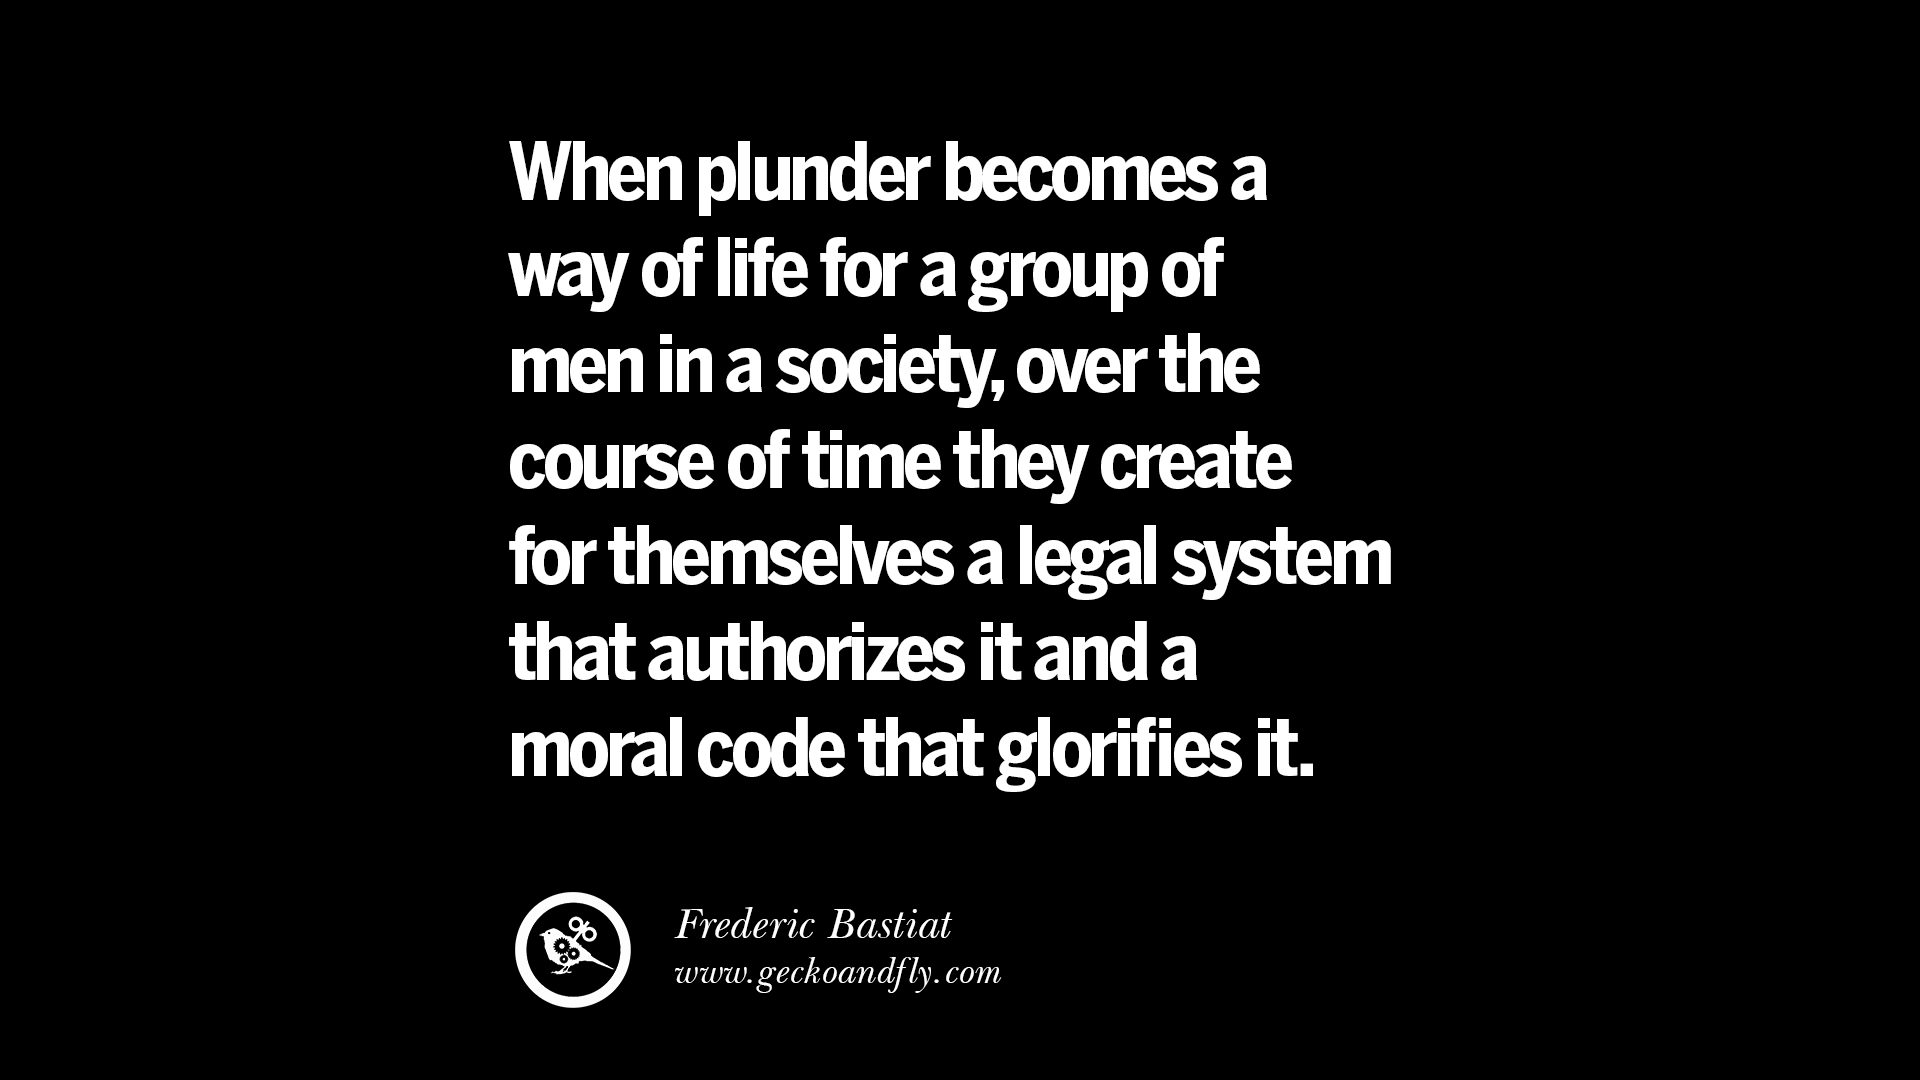 Society Quotes 30 Anti Corruption Quotes For Politicians On Greed And Power